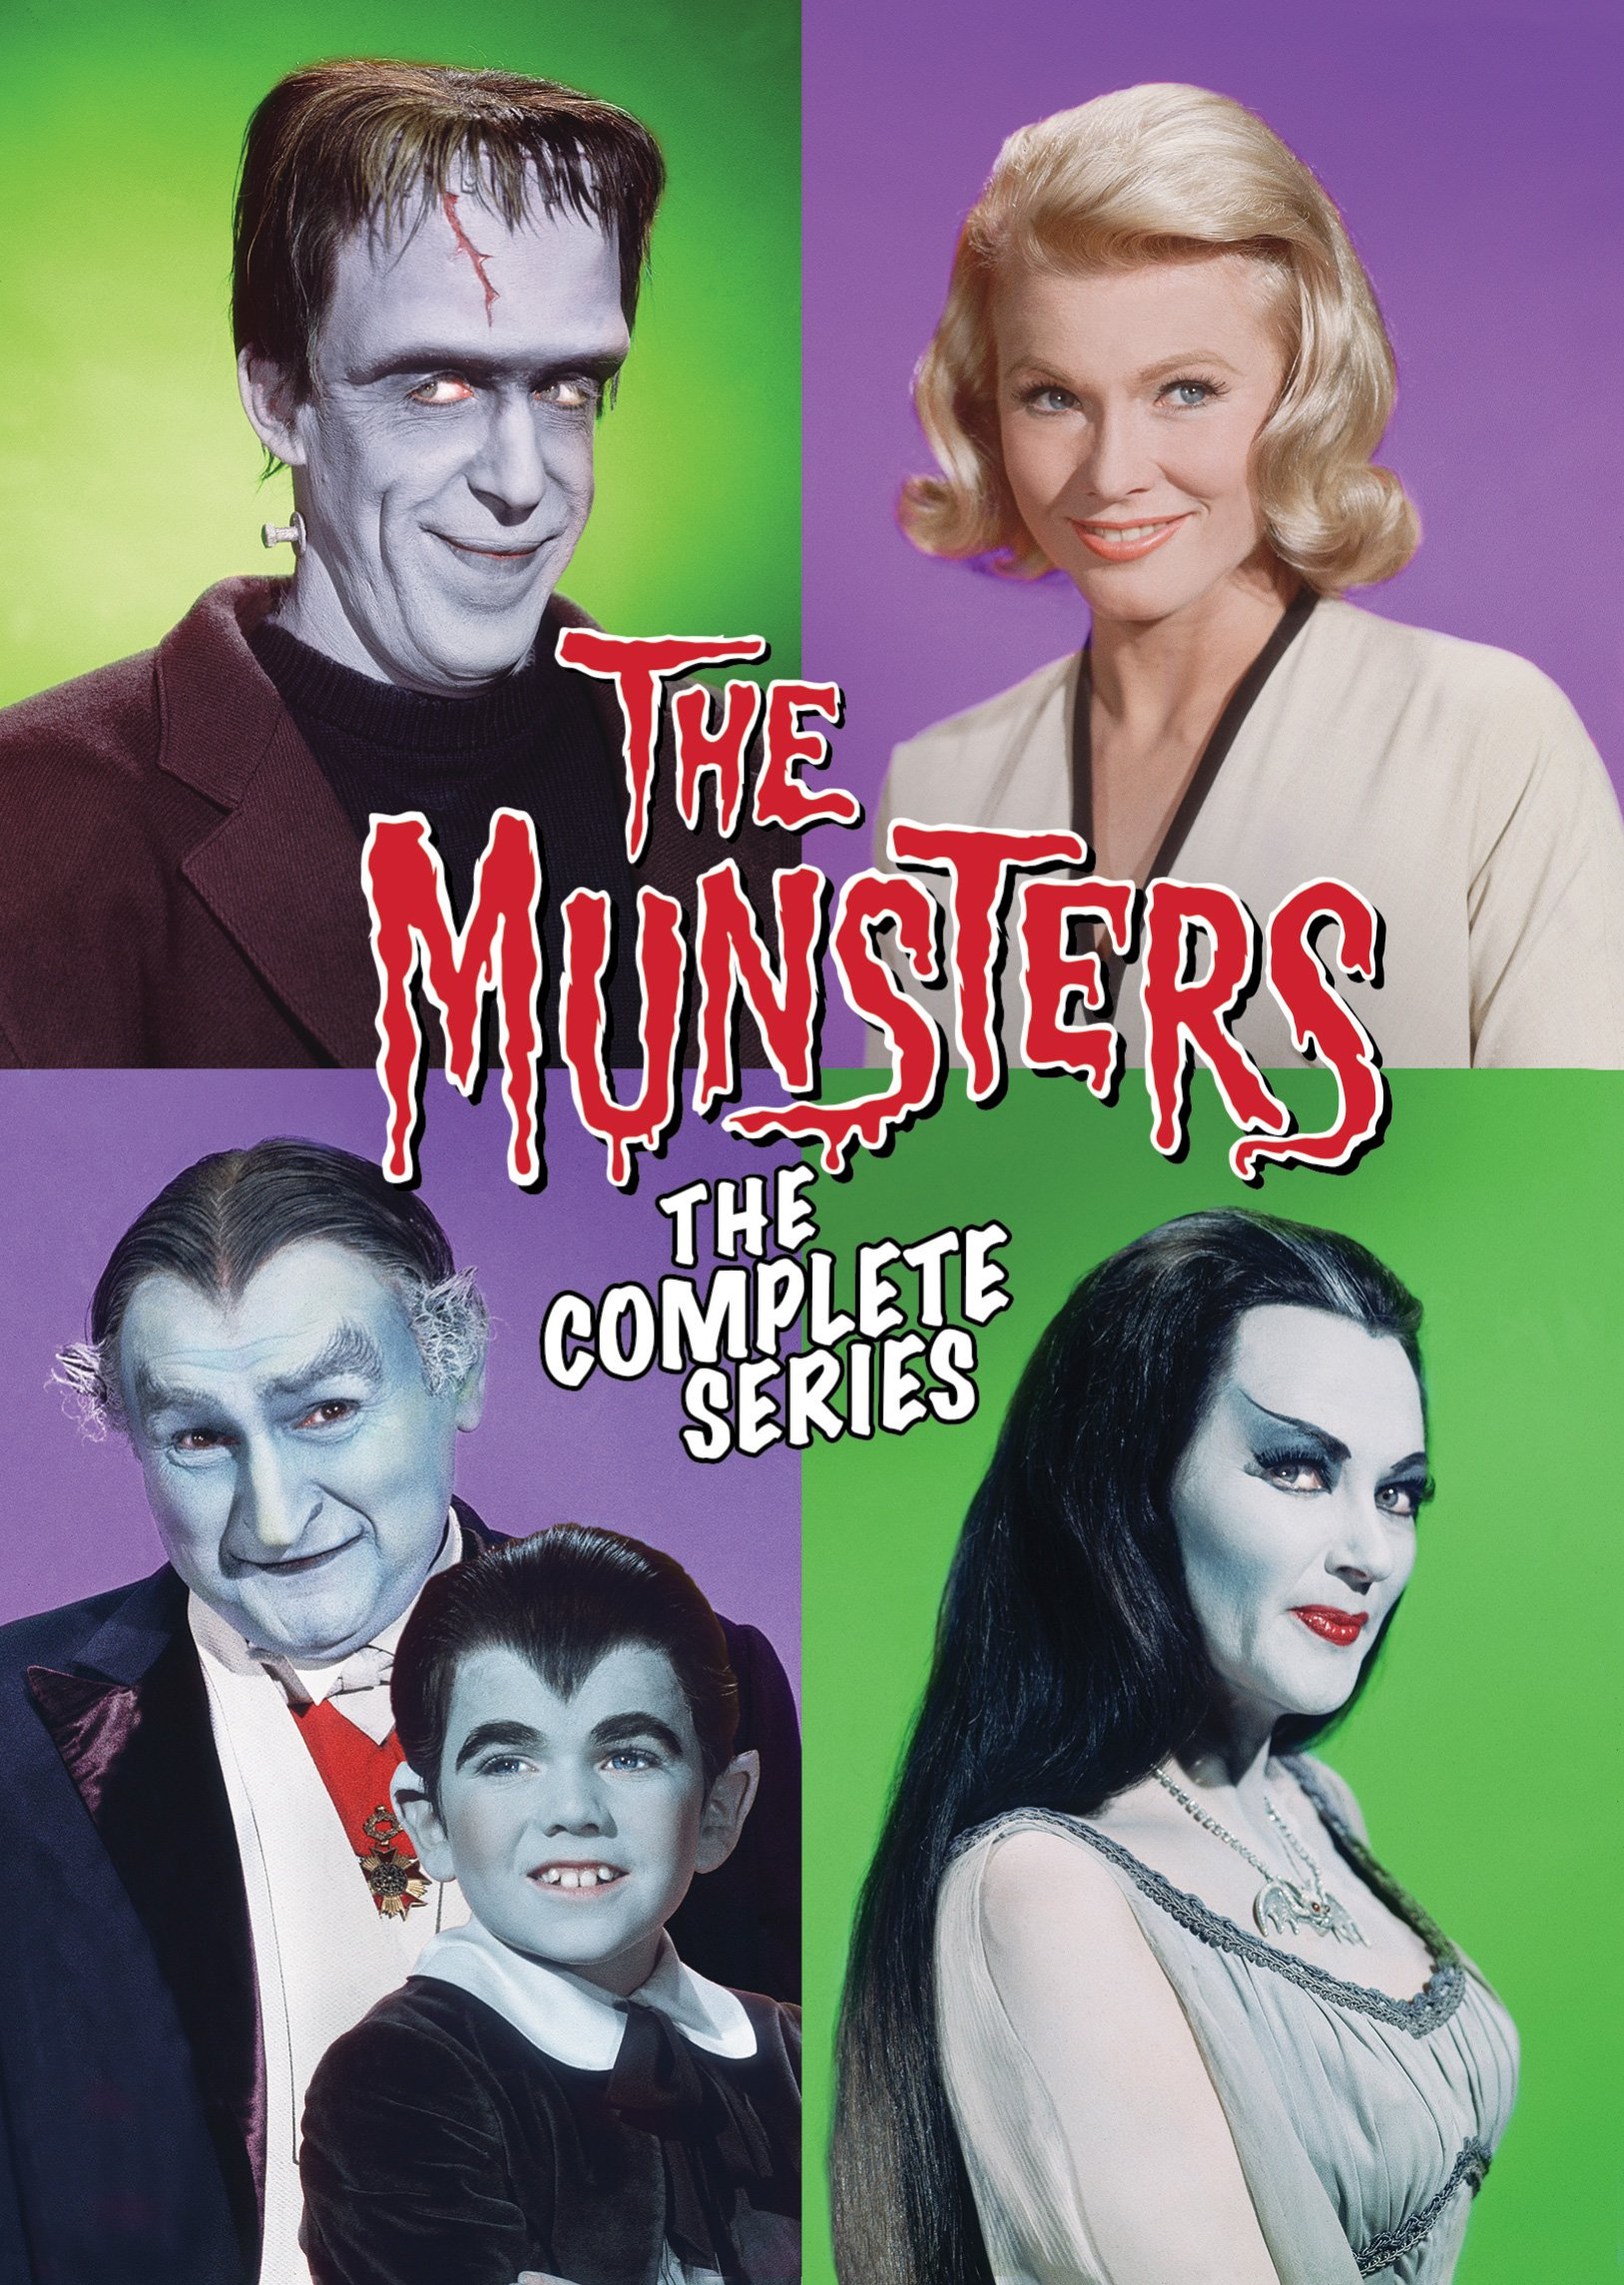 DVD : The Munsters: The Complete Series (Boxed Set, Snap Case, Slipsleeve Packaging, Repackaged, 12 Disc)